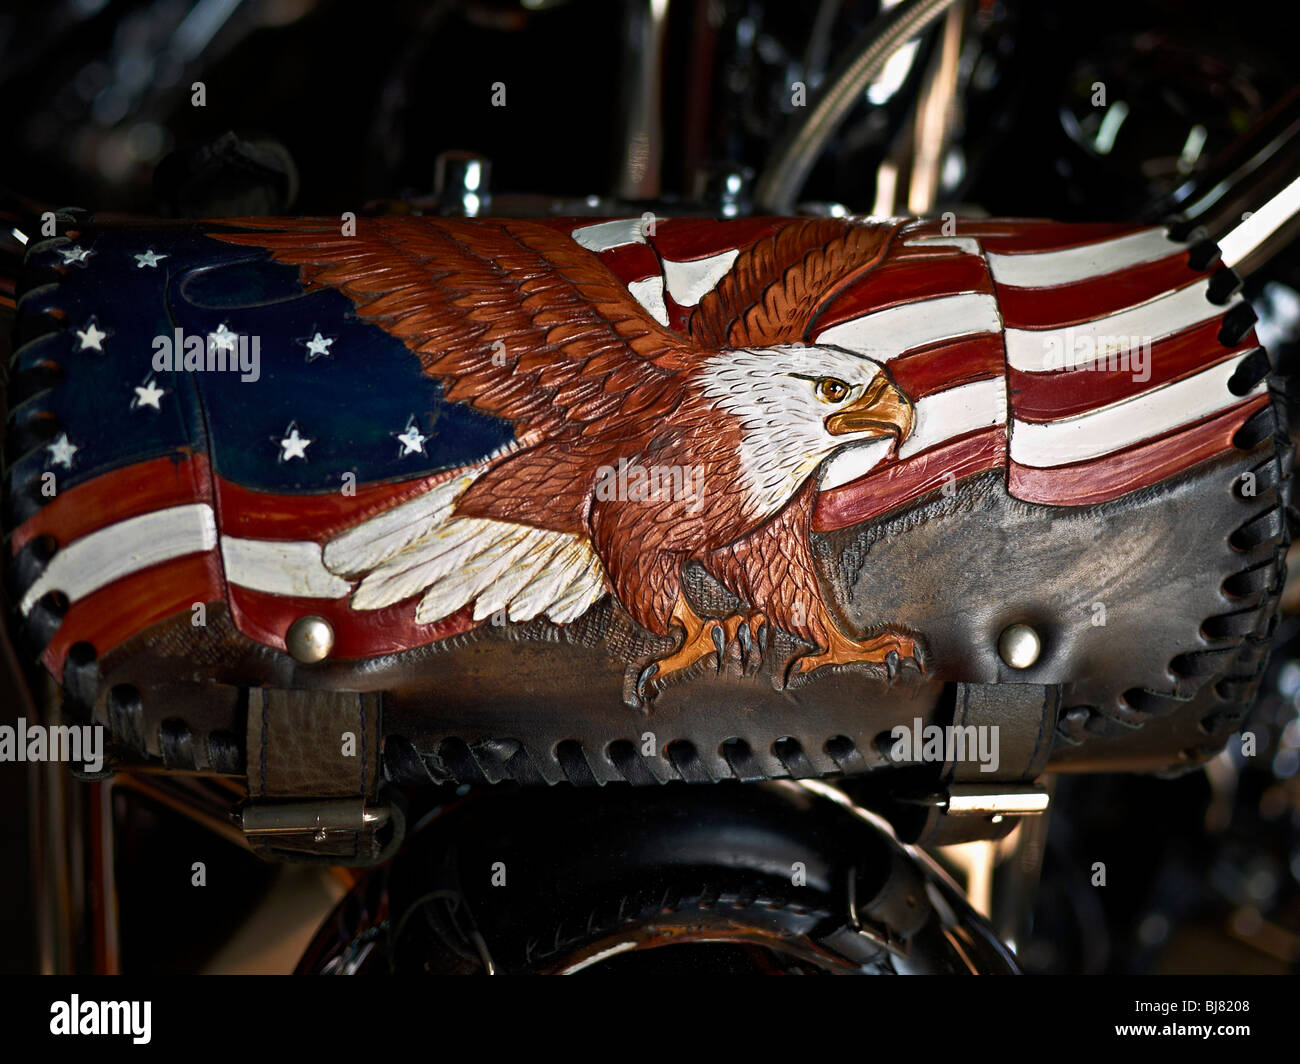 Great American eagle crest on a bikers leather pouch - Stock Image